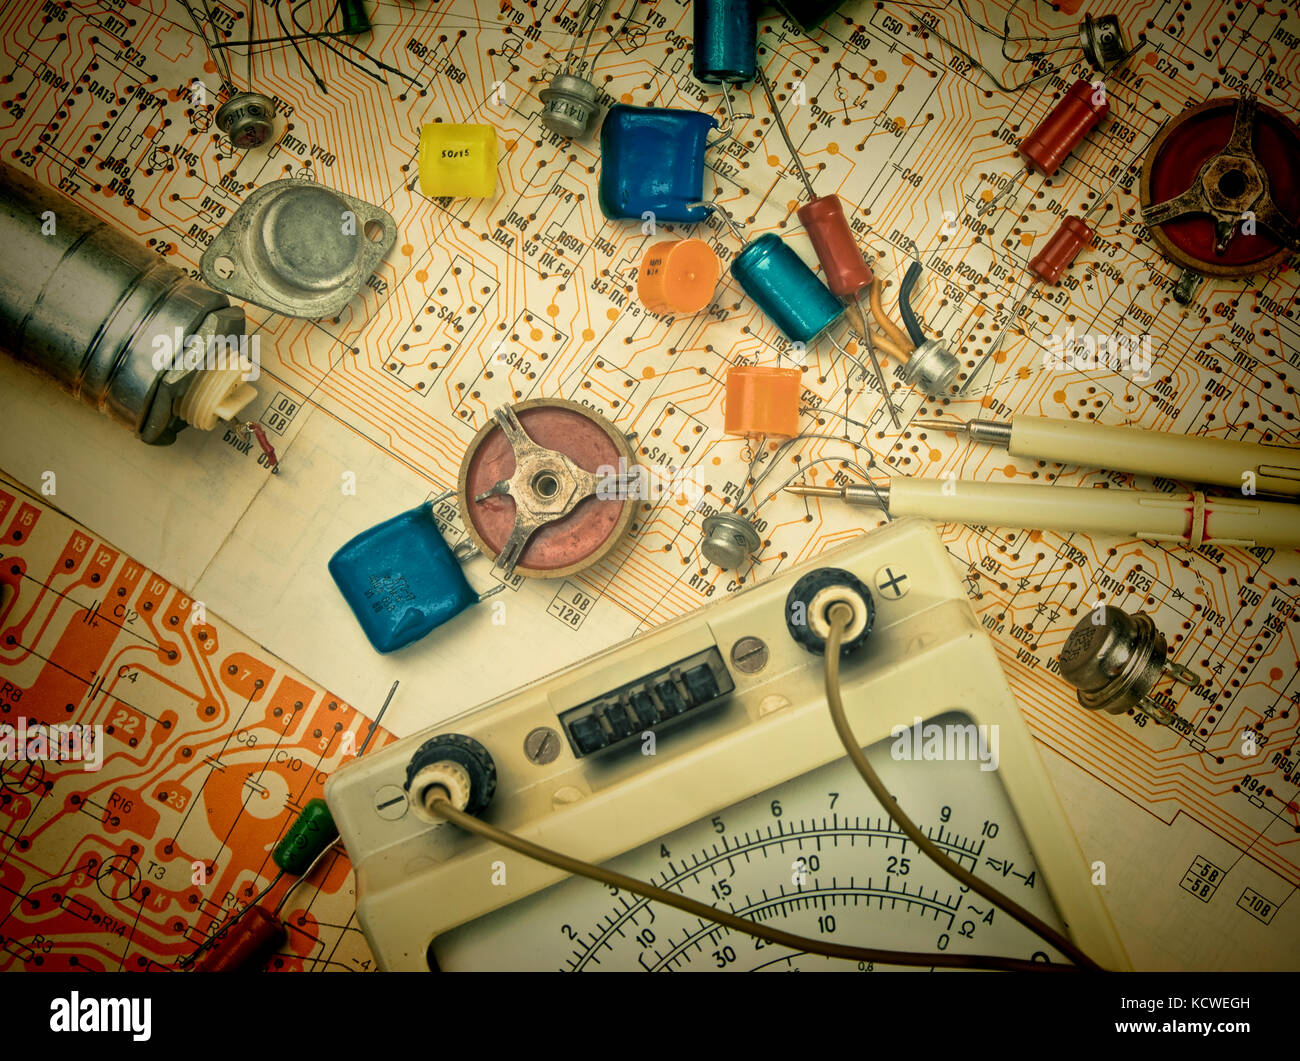 Wiring Diagram Stock Photos Images Alamy Electron Tube Industrial Old Electronic Components Lie On The Image